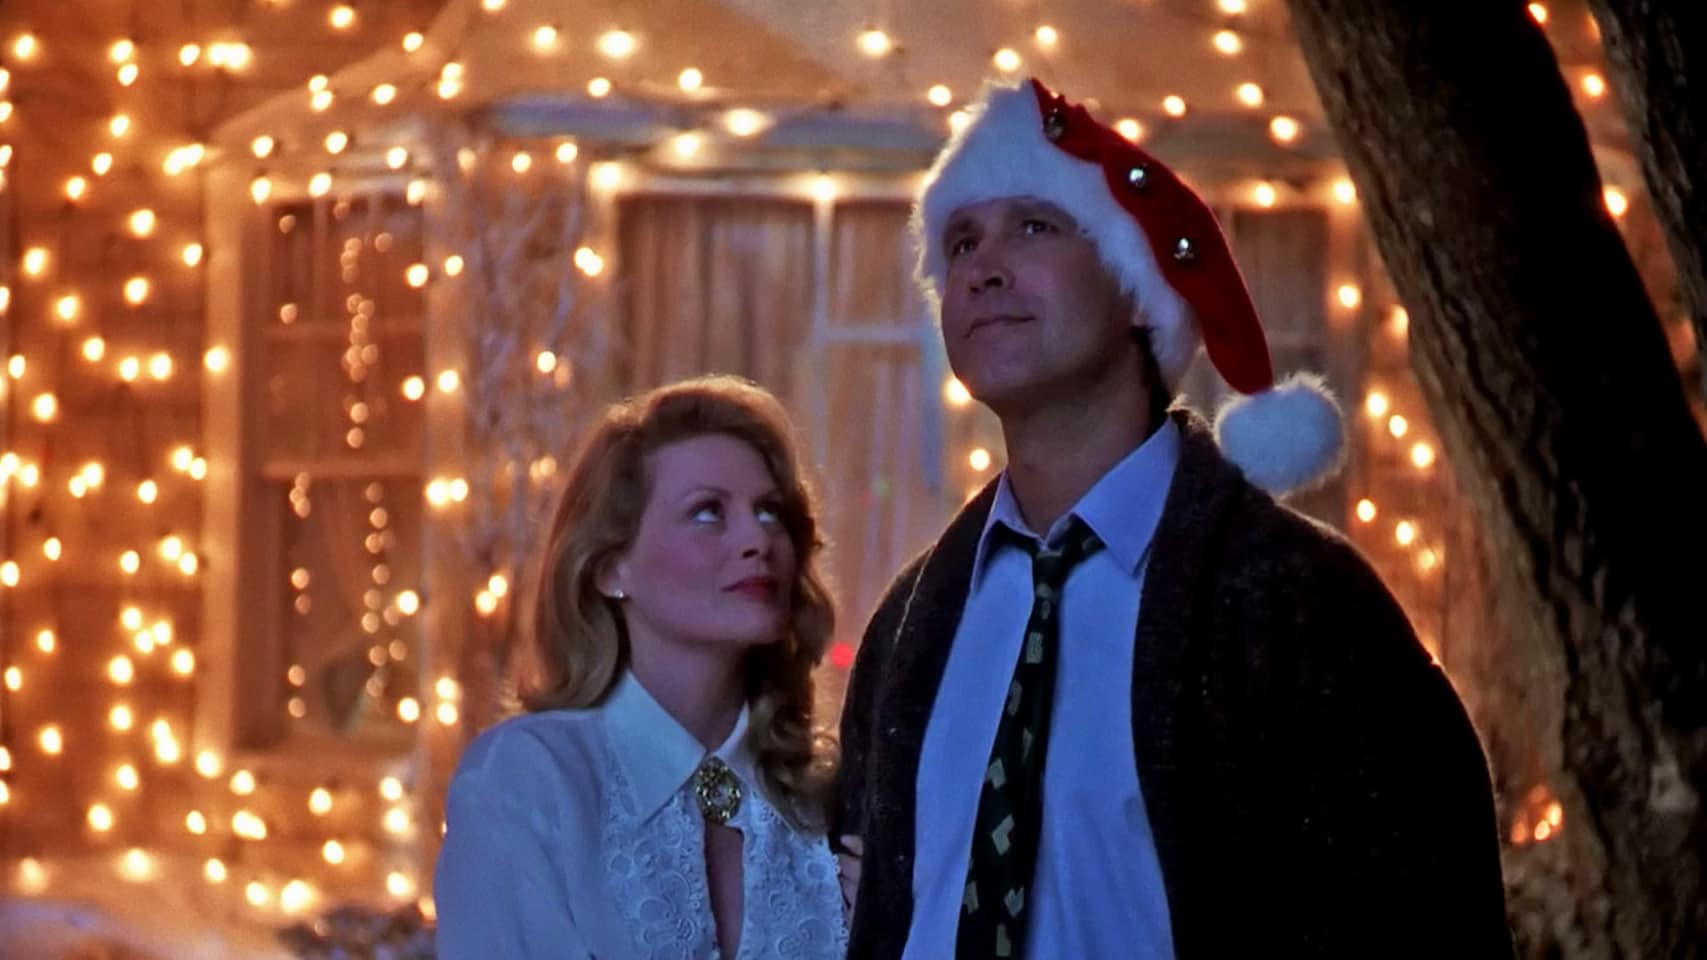 See a Classic Holiday Film for $5 at a Regal Movie Theatre Near You